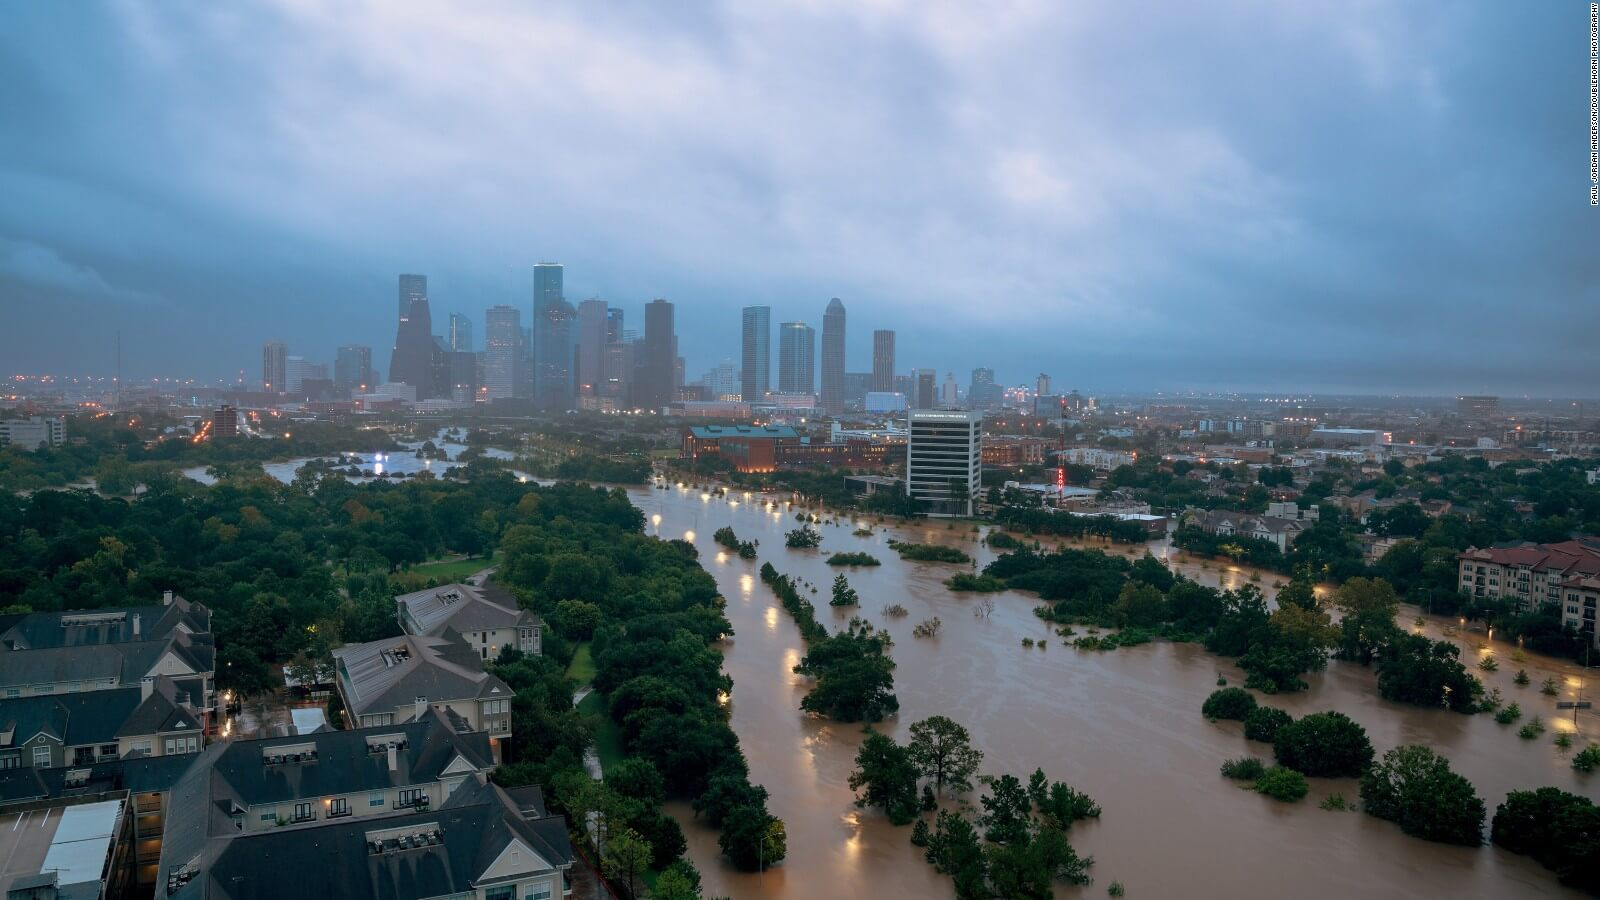 Supporting those affected by Hurricane Harvey